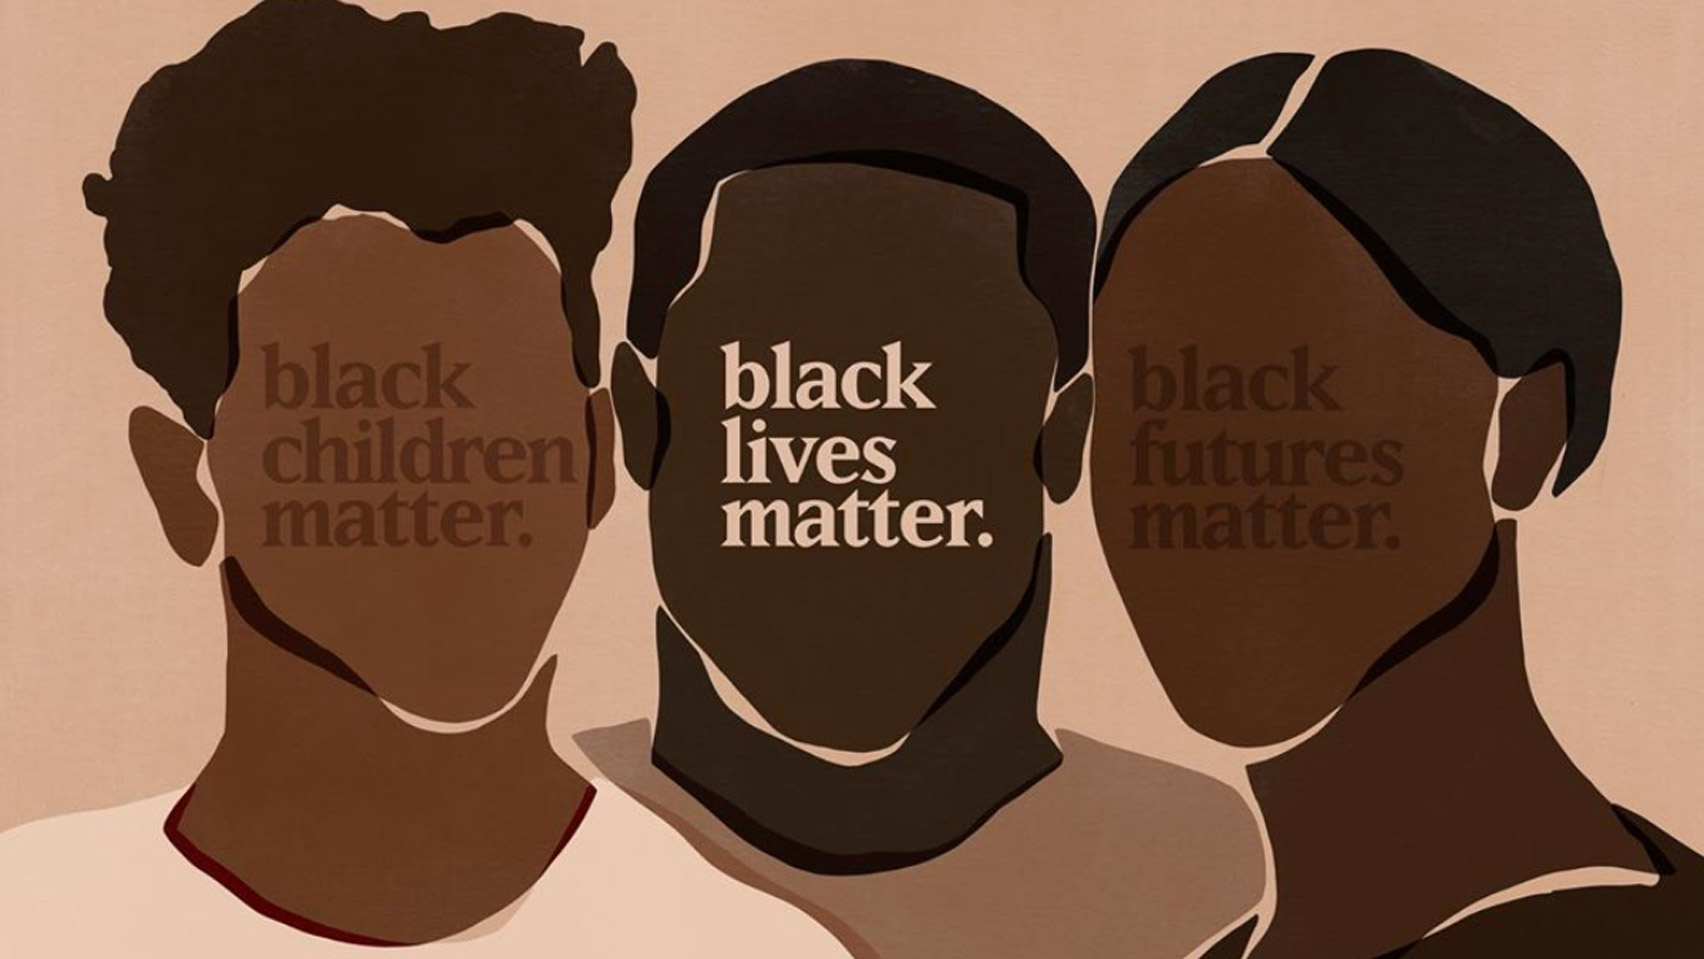 Graphic designers share illustrations in support of Black Lives Matter